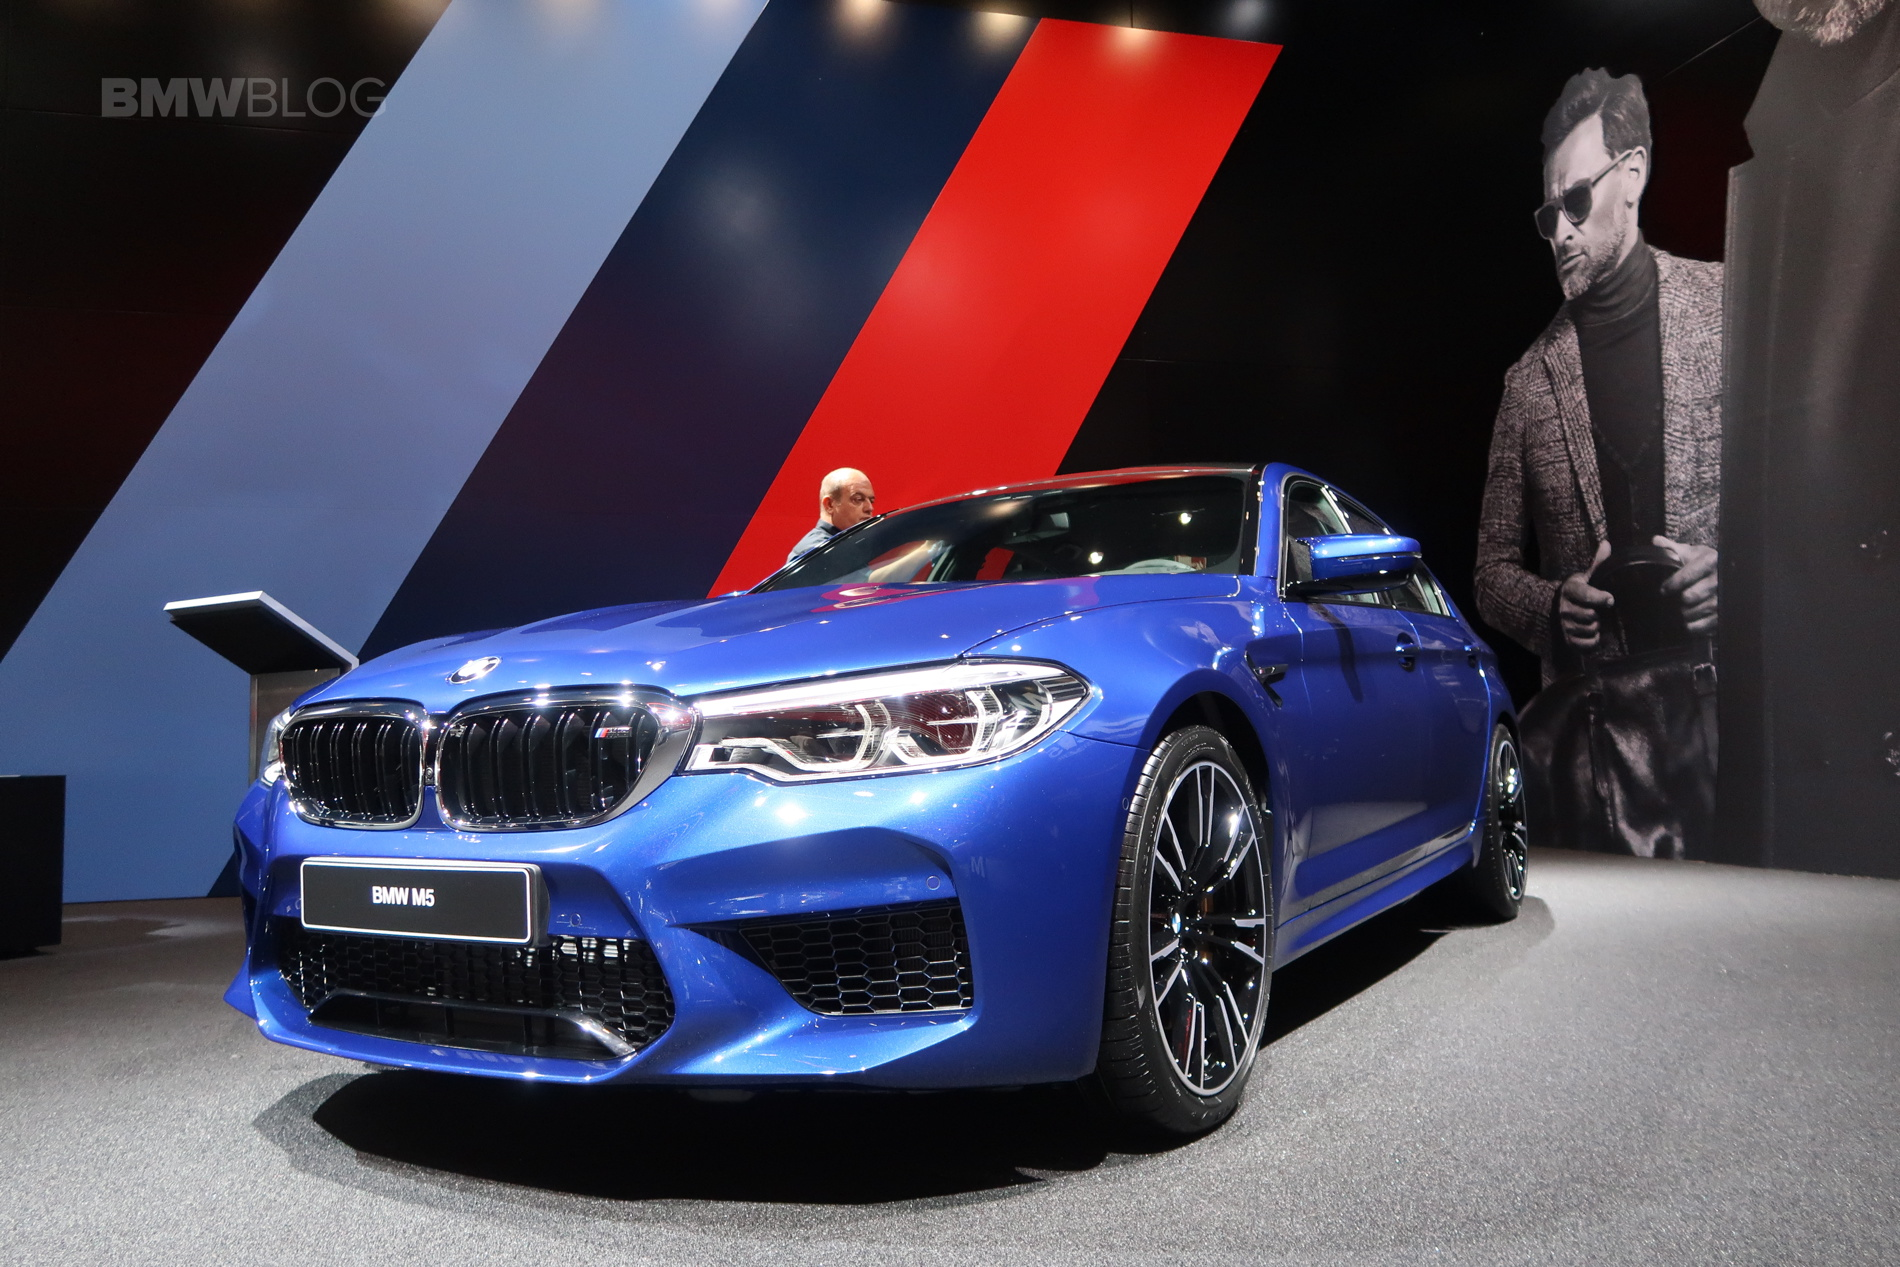 2017 Frankfurt Auto Show The New F90 Bmw M5 In Marina Bay Blue